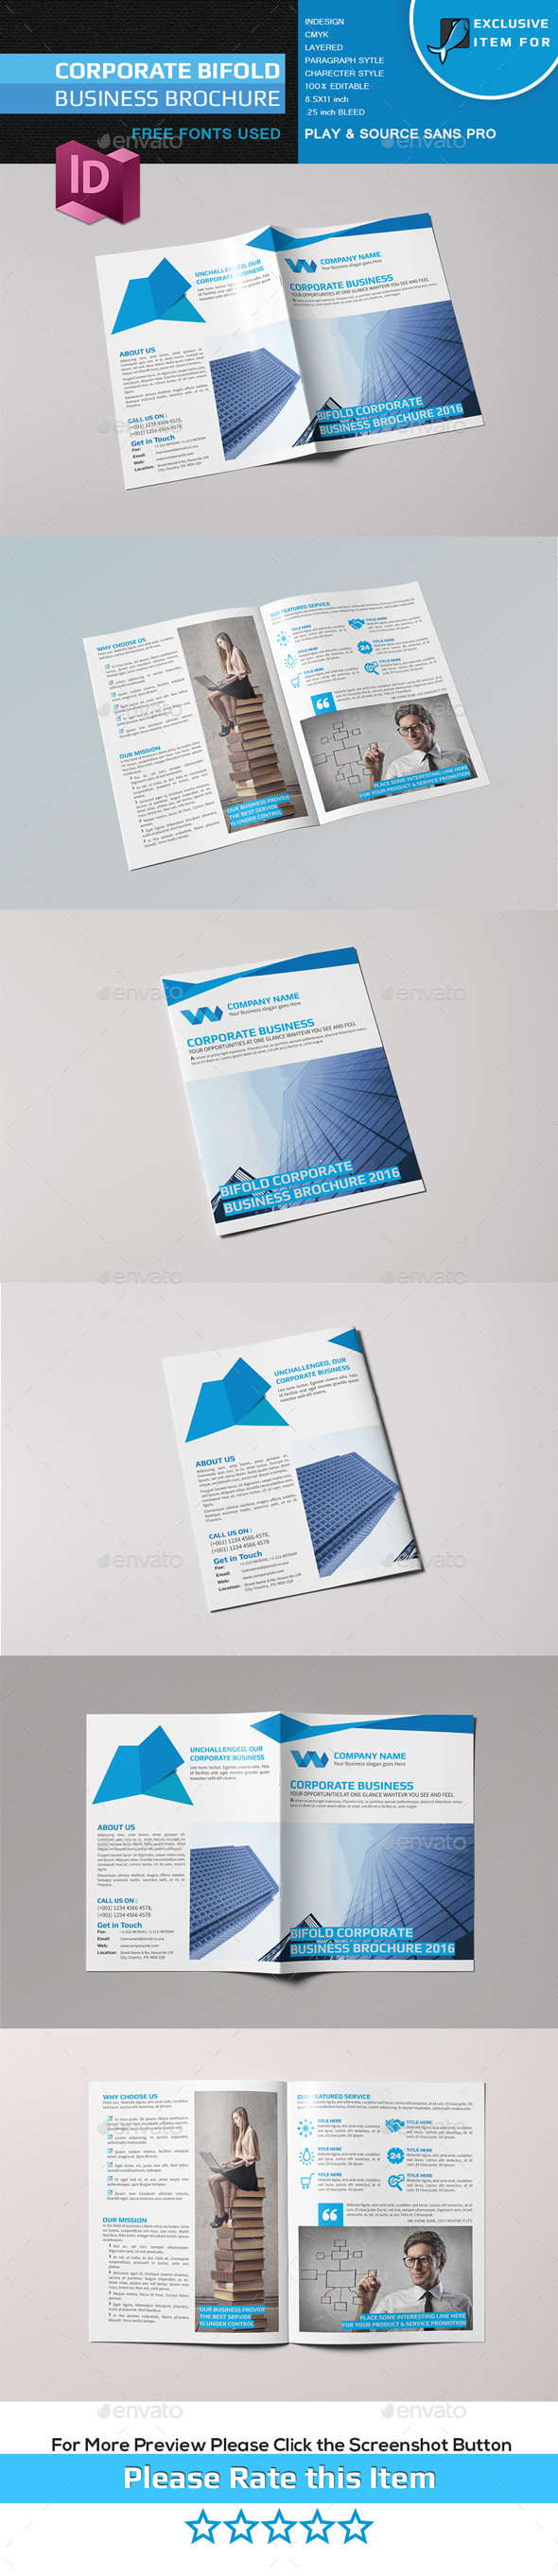 Bifold Business Brochure VOL-03 - Corporate Brochures